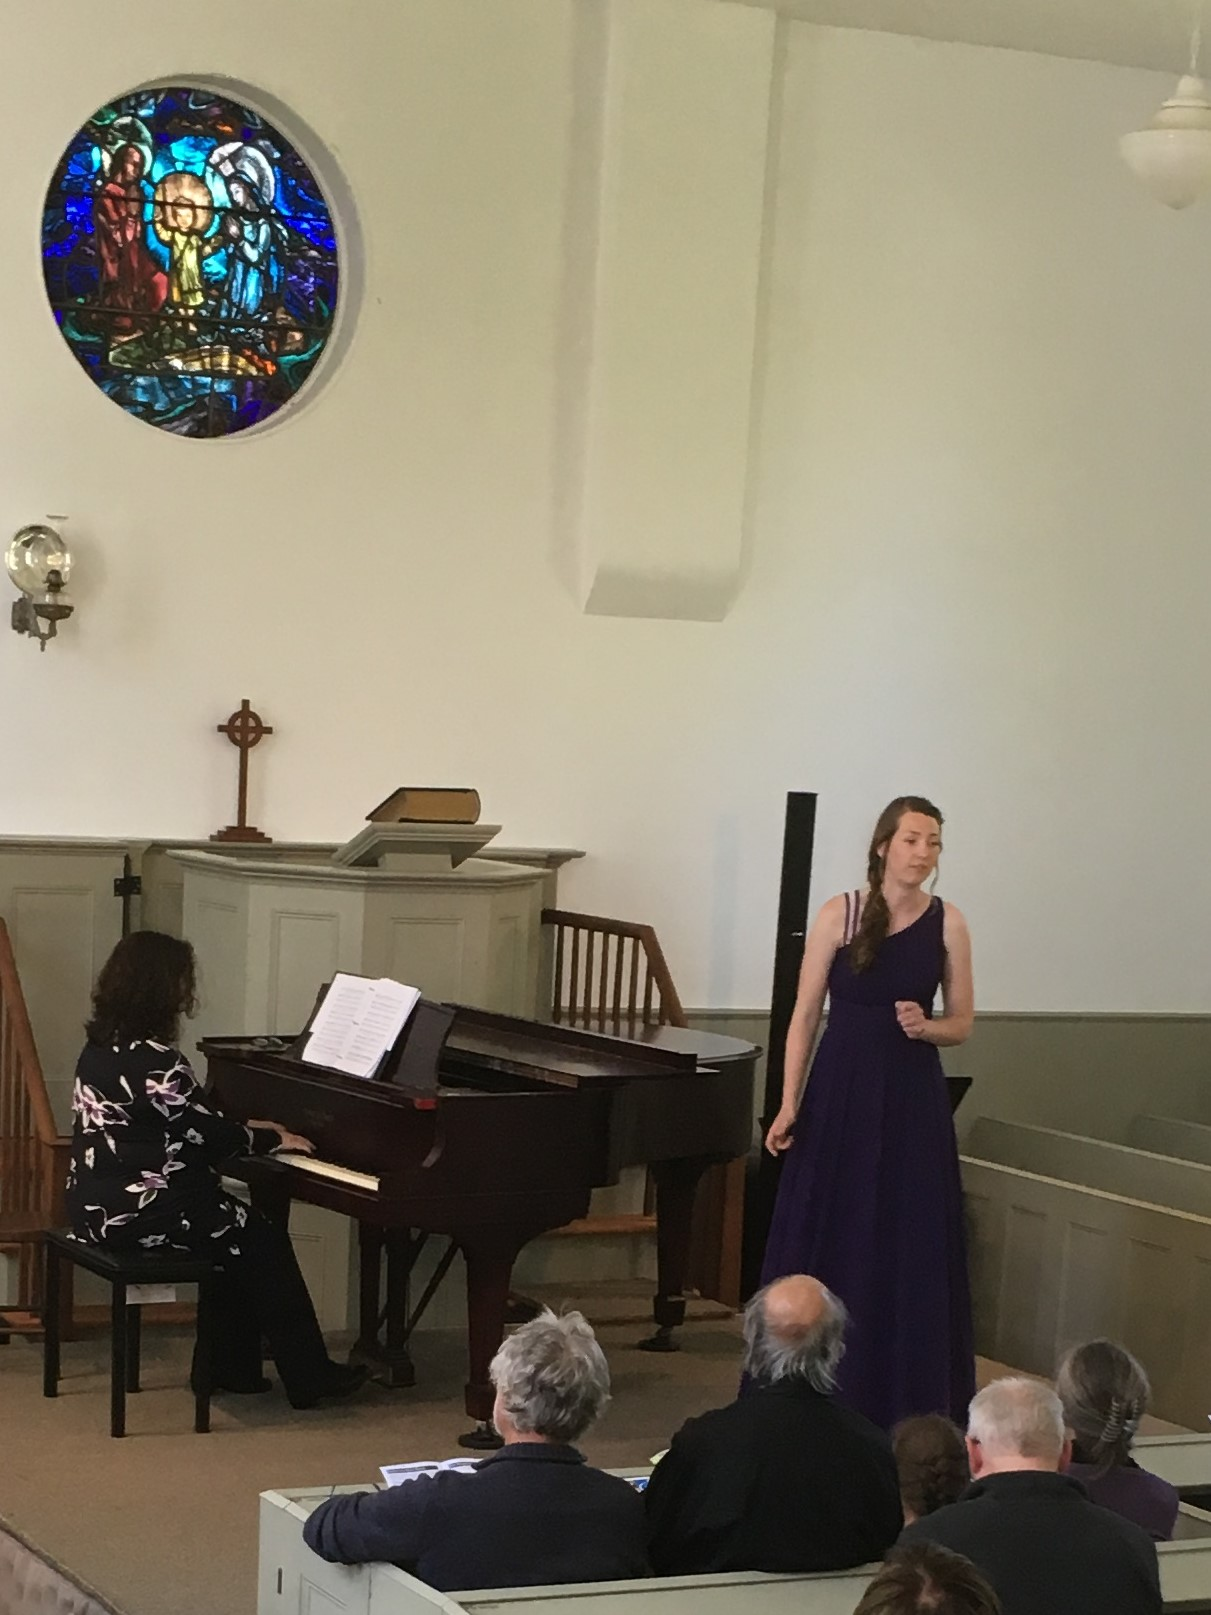 Vanessa Bosman sings a work composed by her accompanist Fiona Evison.